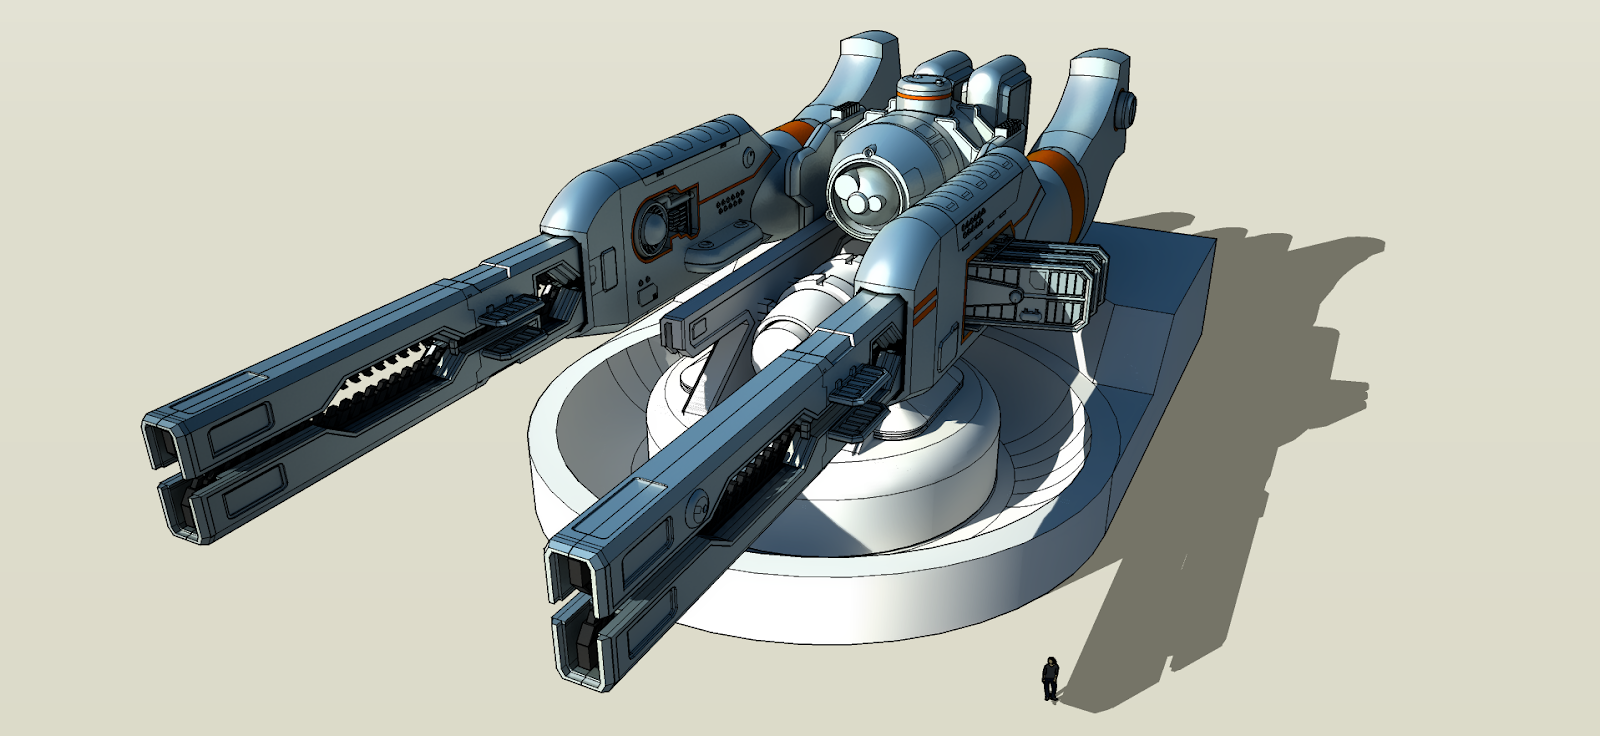 wip___dual_railgun_turret___2_by_freihei